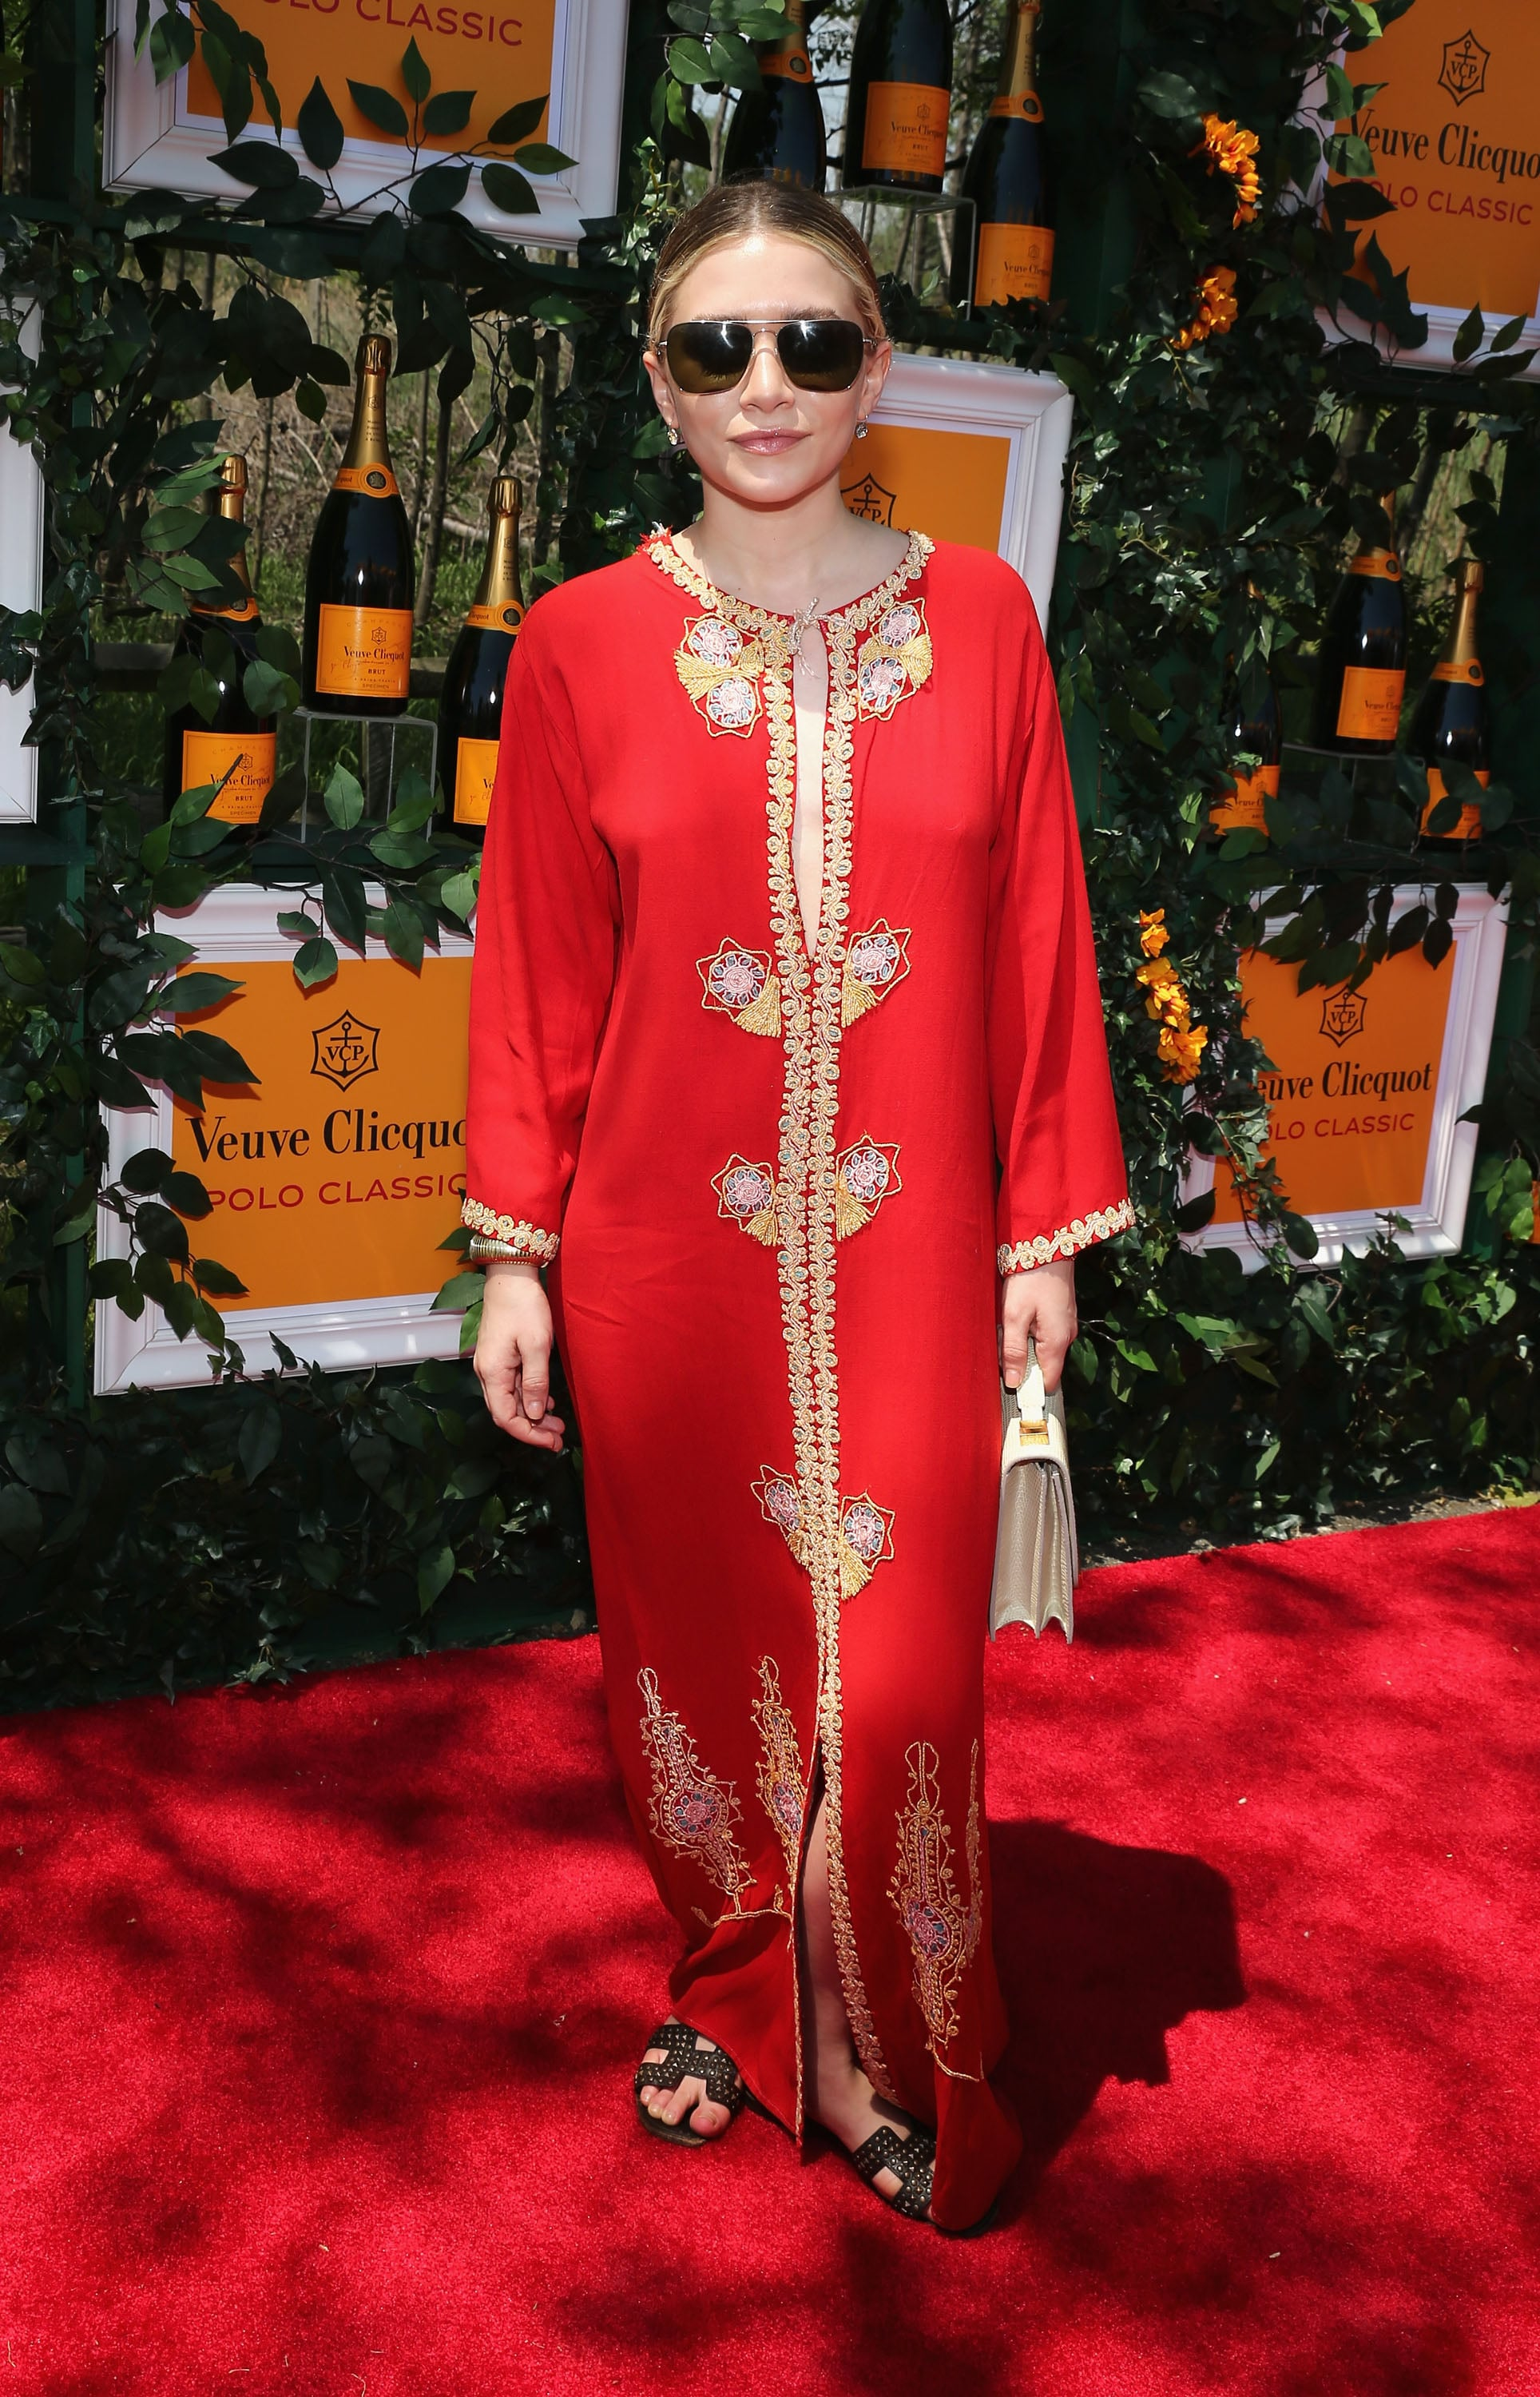 Ashley Olsen, in a vintage red caftan, at the sixth annual Veuve Clicquot Polo Classic in Jersey City, NJ.